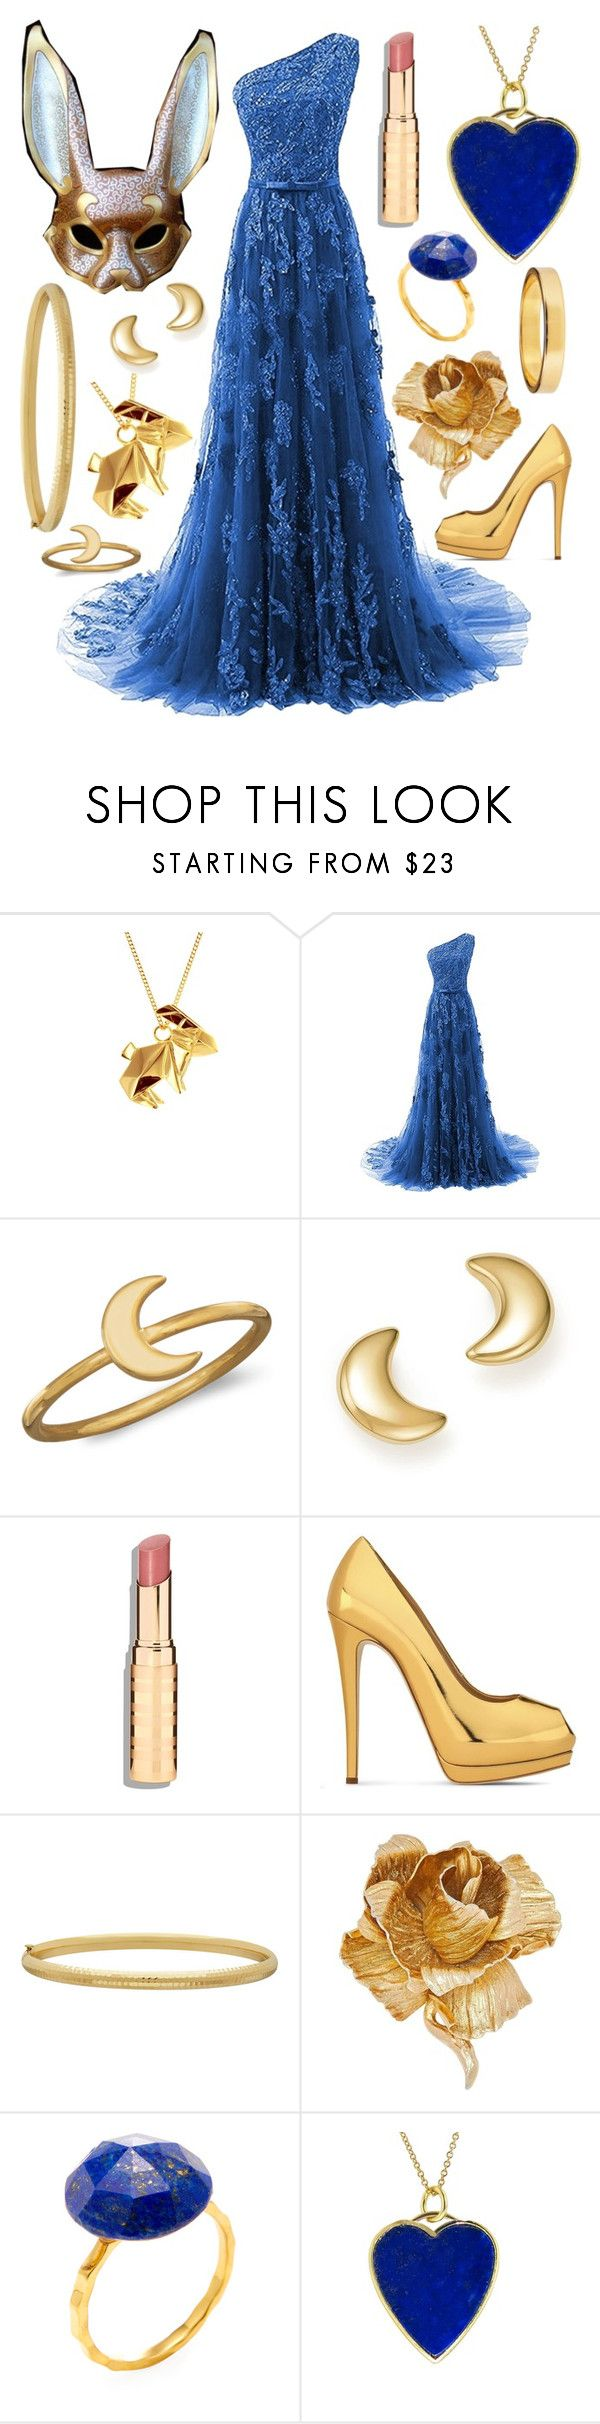 """The Rabbit"" by roboticabirdie ❤ liked on Polyvore featuring Origami Jewellery, BillyTheTree, Bloomingdale's, Giuseppe Zanotti, Everlasting Gold, Christian Dior, Alanna Bess and Jennifer Meyer Jewelry"